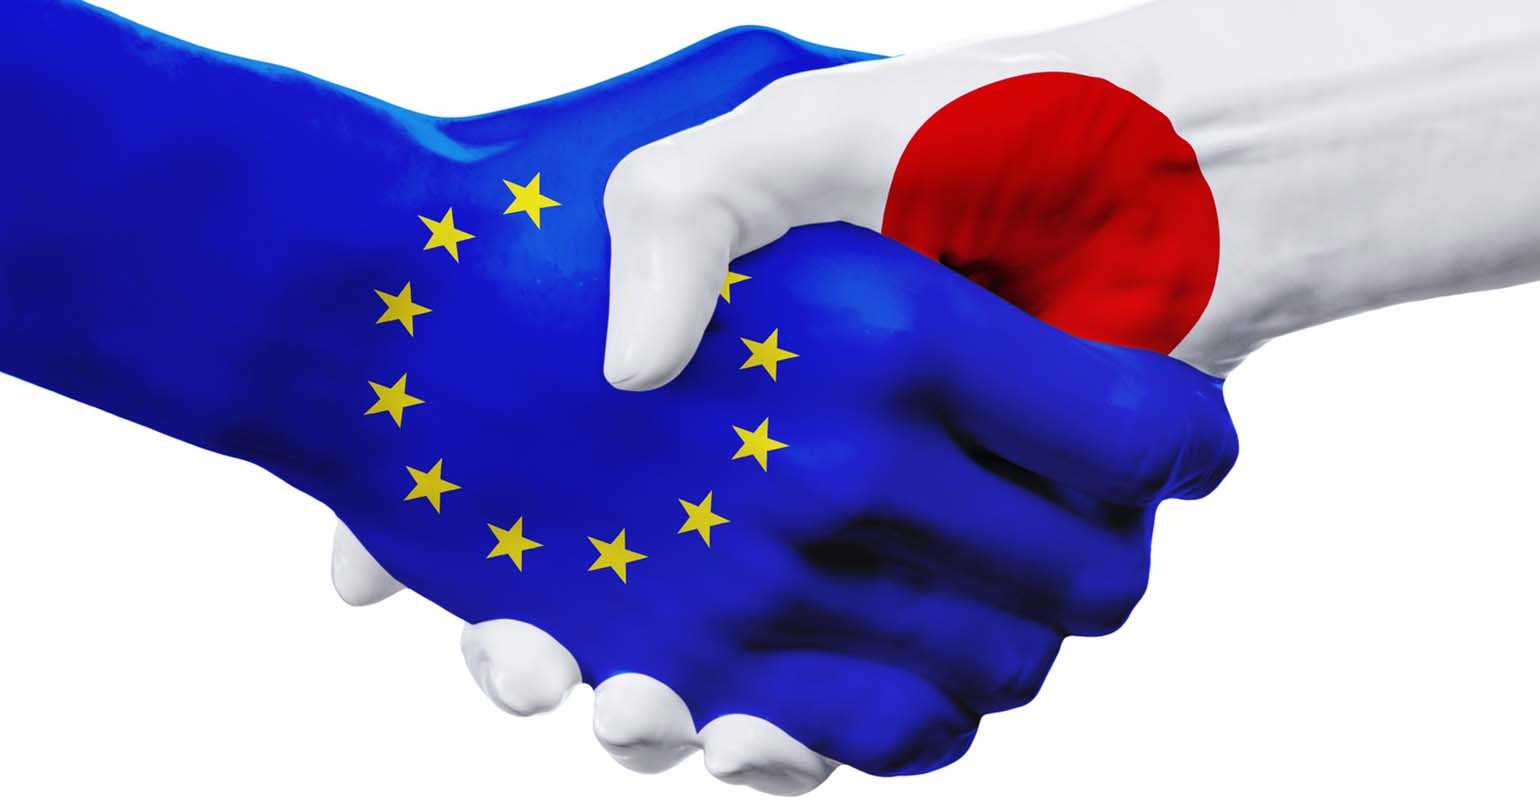 EU, Japan seek to push through trade deal before Brexit